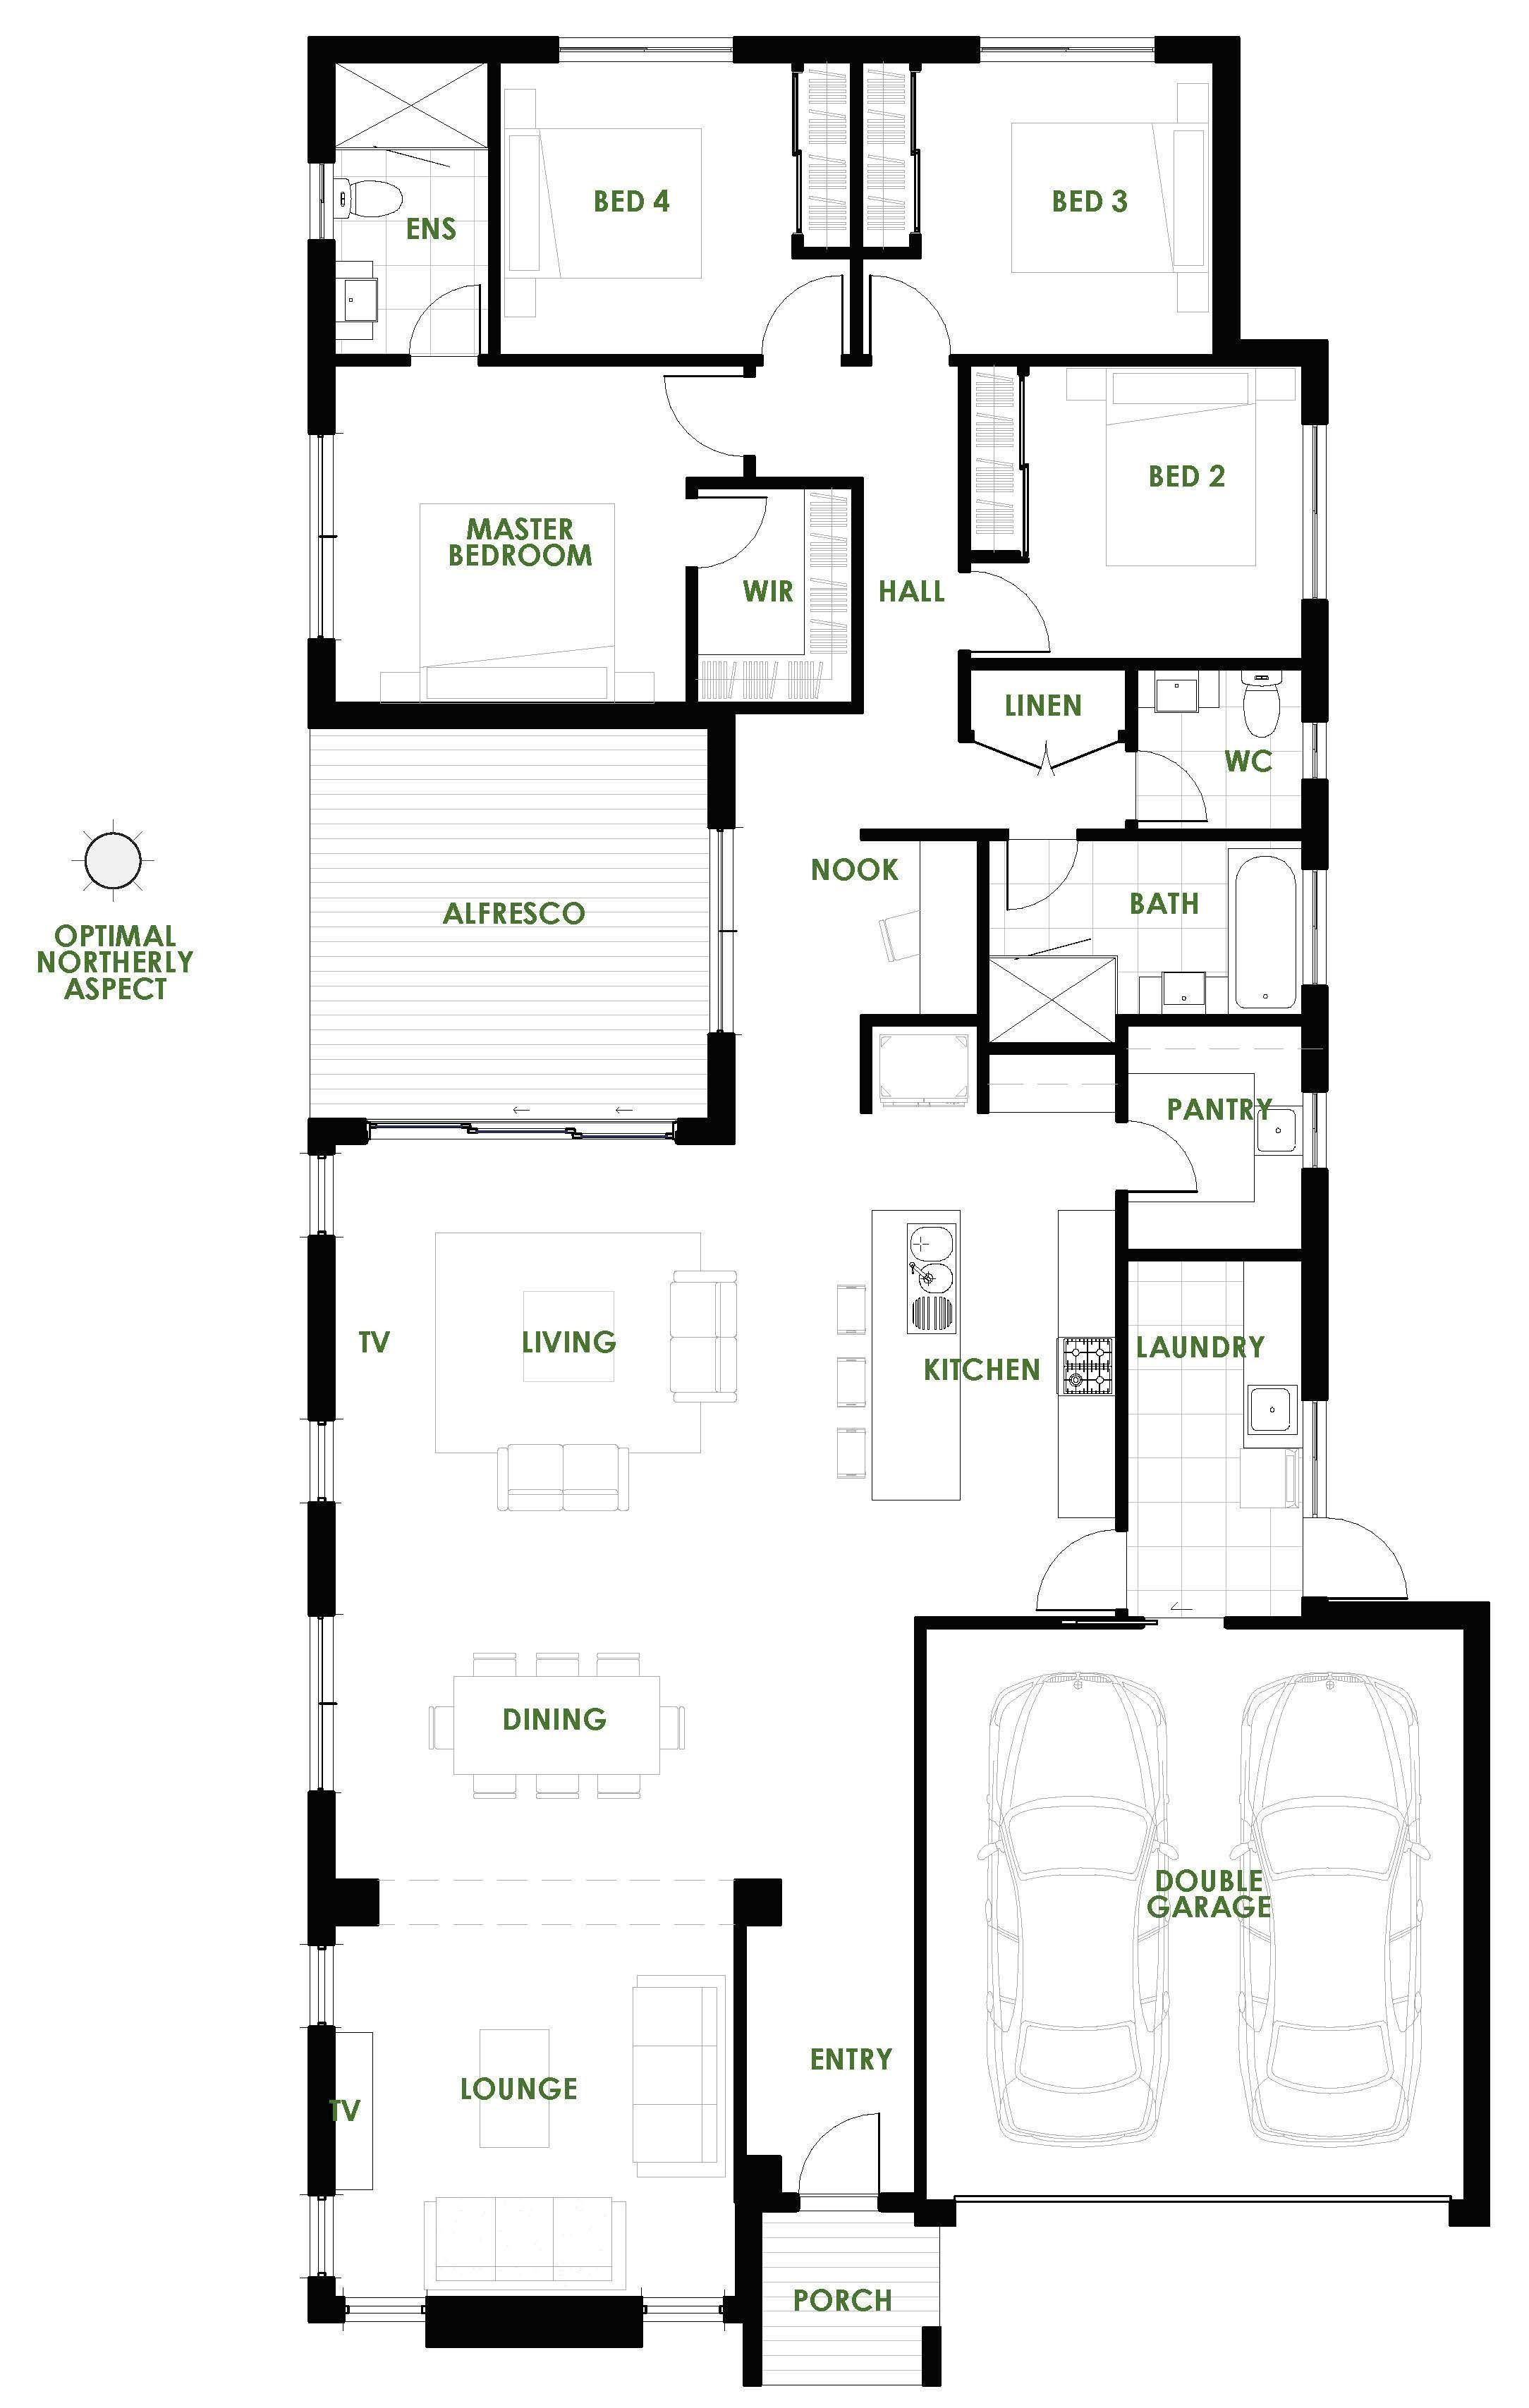 Are You Looking For The Latest In Eco House Design A Waratah Energy Efficient House Plan From Gr Energy Efficient House Plans Eco House Design Eco House Plans